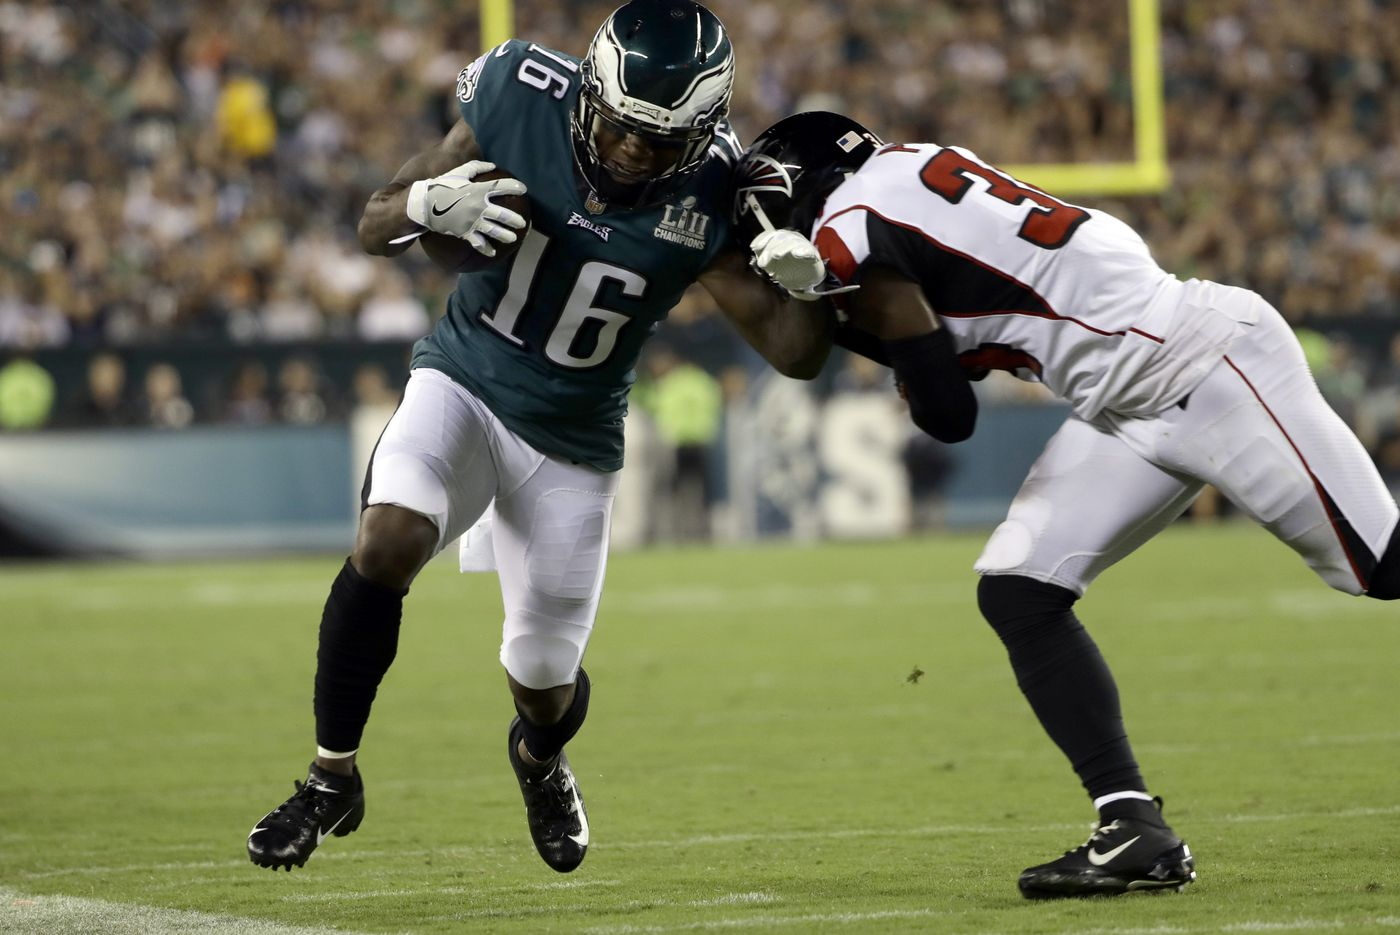 Problems on the receiving end? Eagles might need to shuffle wideouts